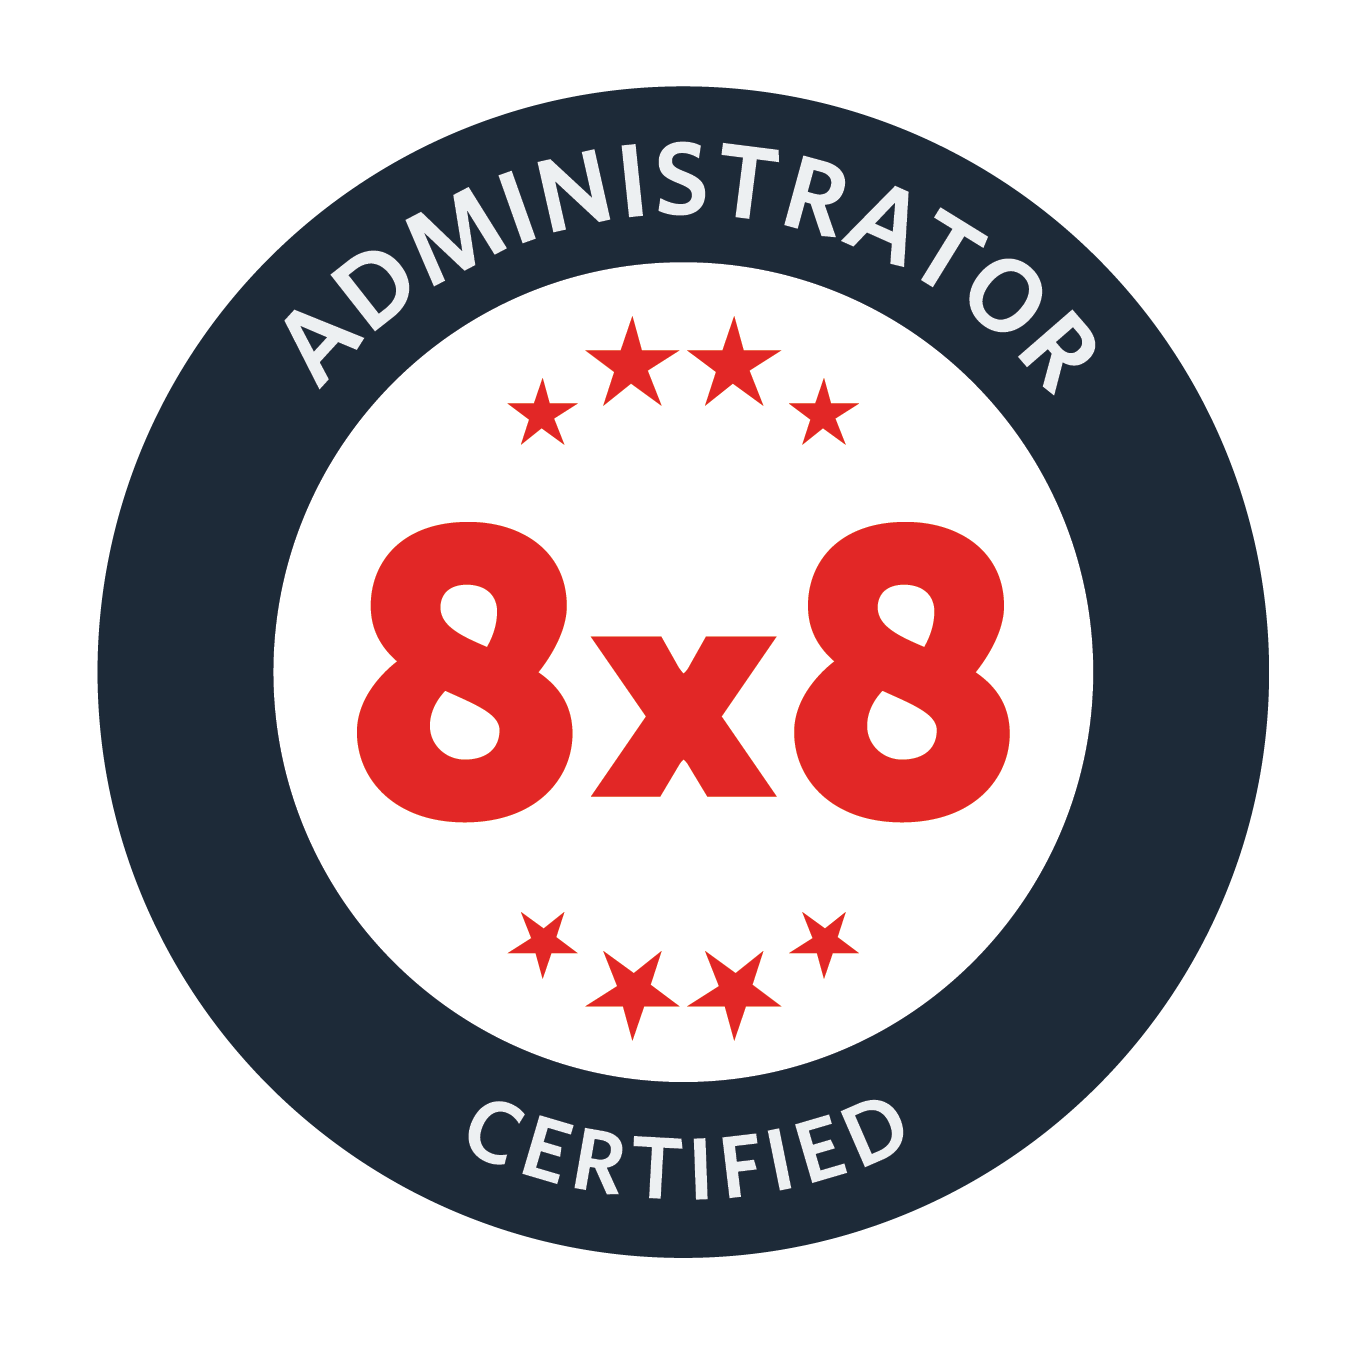 Administrator_Certified.png